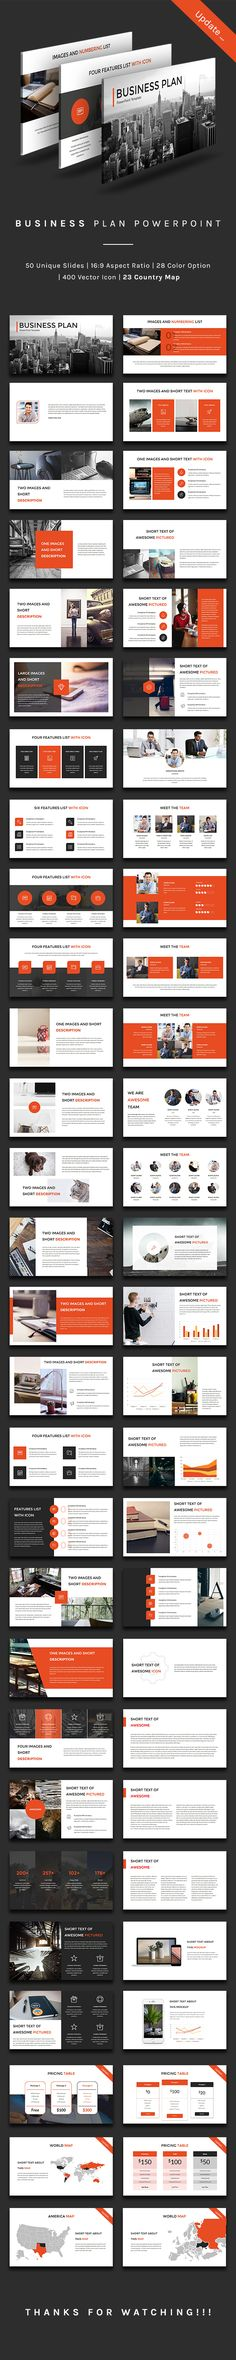 Business Plan Powerpoint - Business PowerPoint Templates Download here: https://graphicriver.net/item/business-plan-powerpoint/19193700?https://graphicriver.net/item/sketch-powerpoint-template/3176416?ref=classicdesignp